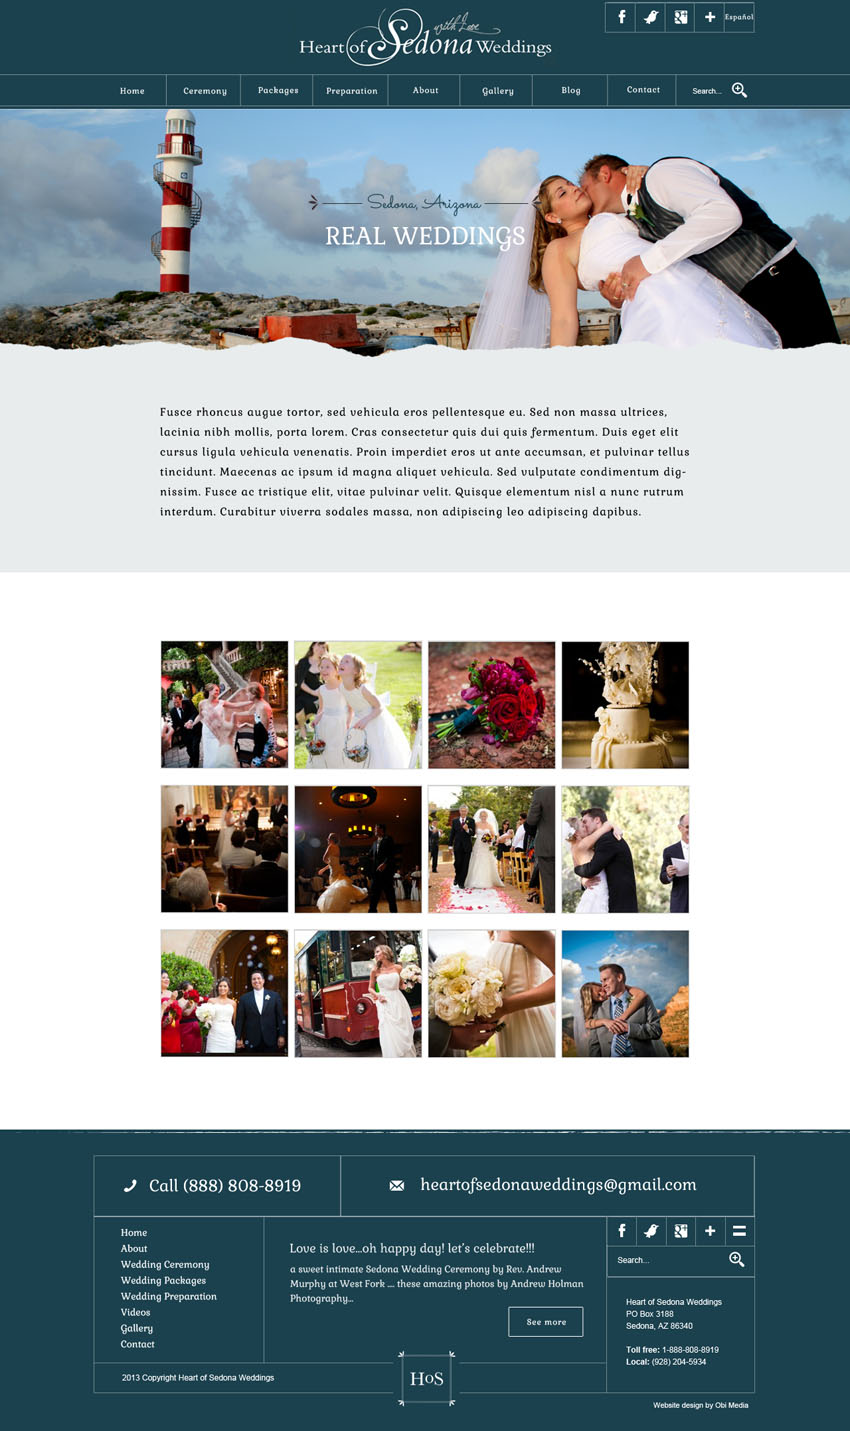 Heart of Sedona Website design